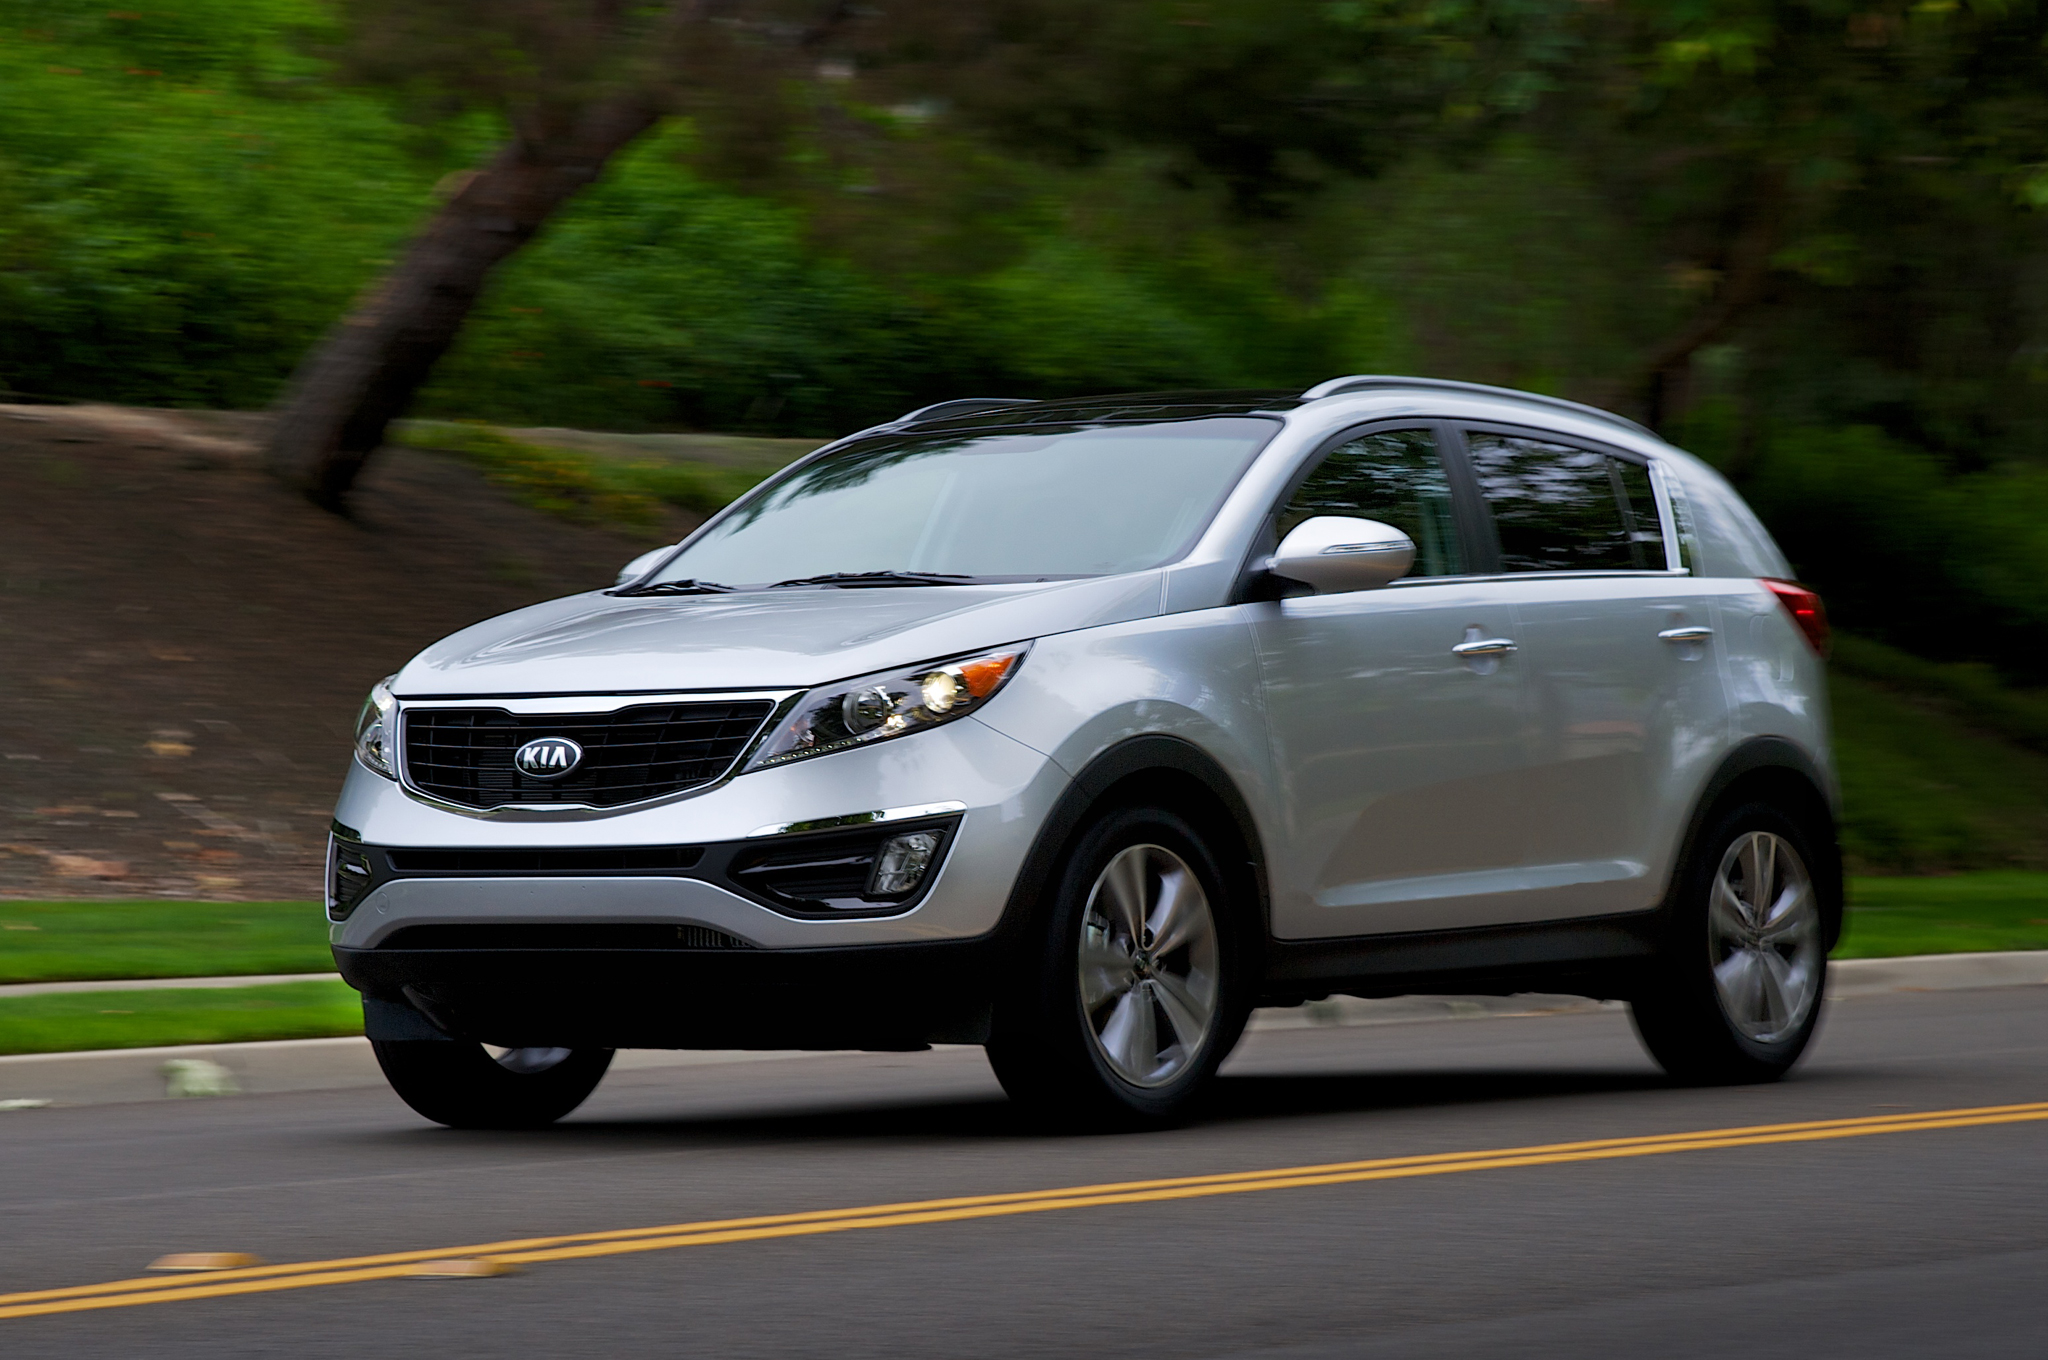 used sportage buy kia sale for in mymotor a malaysia